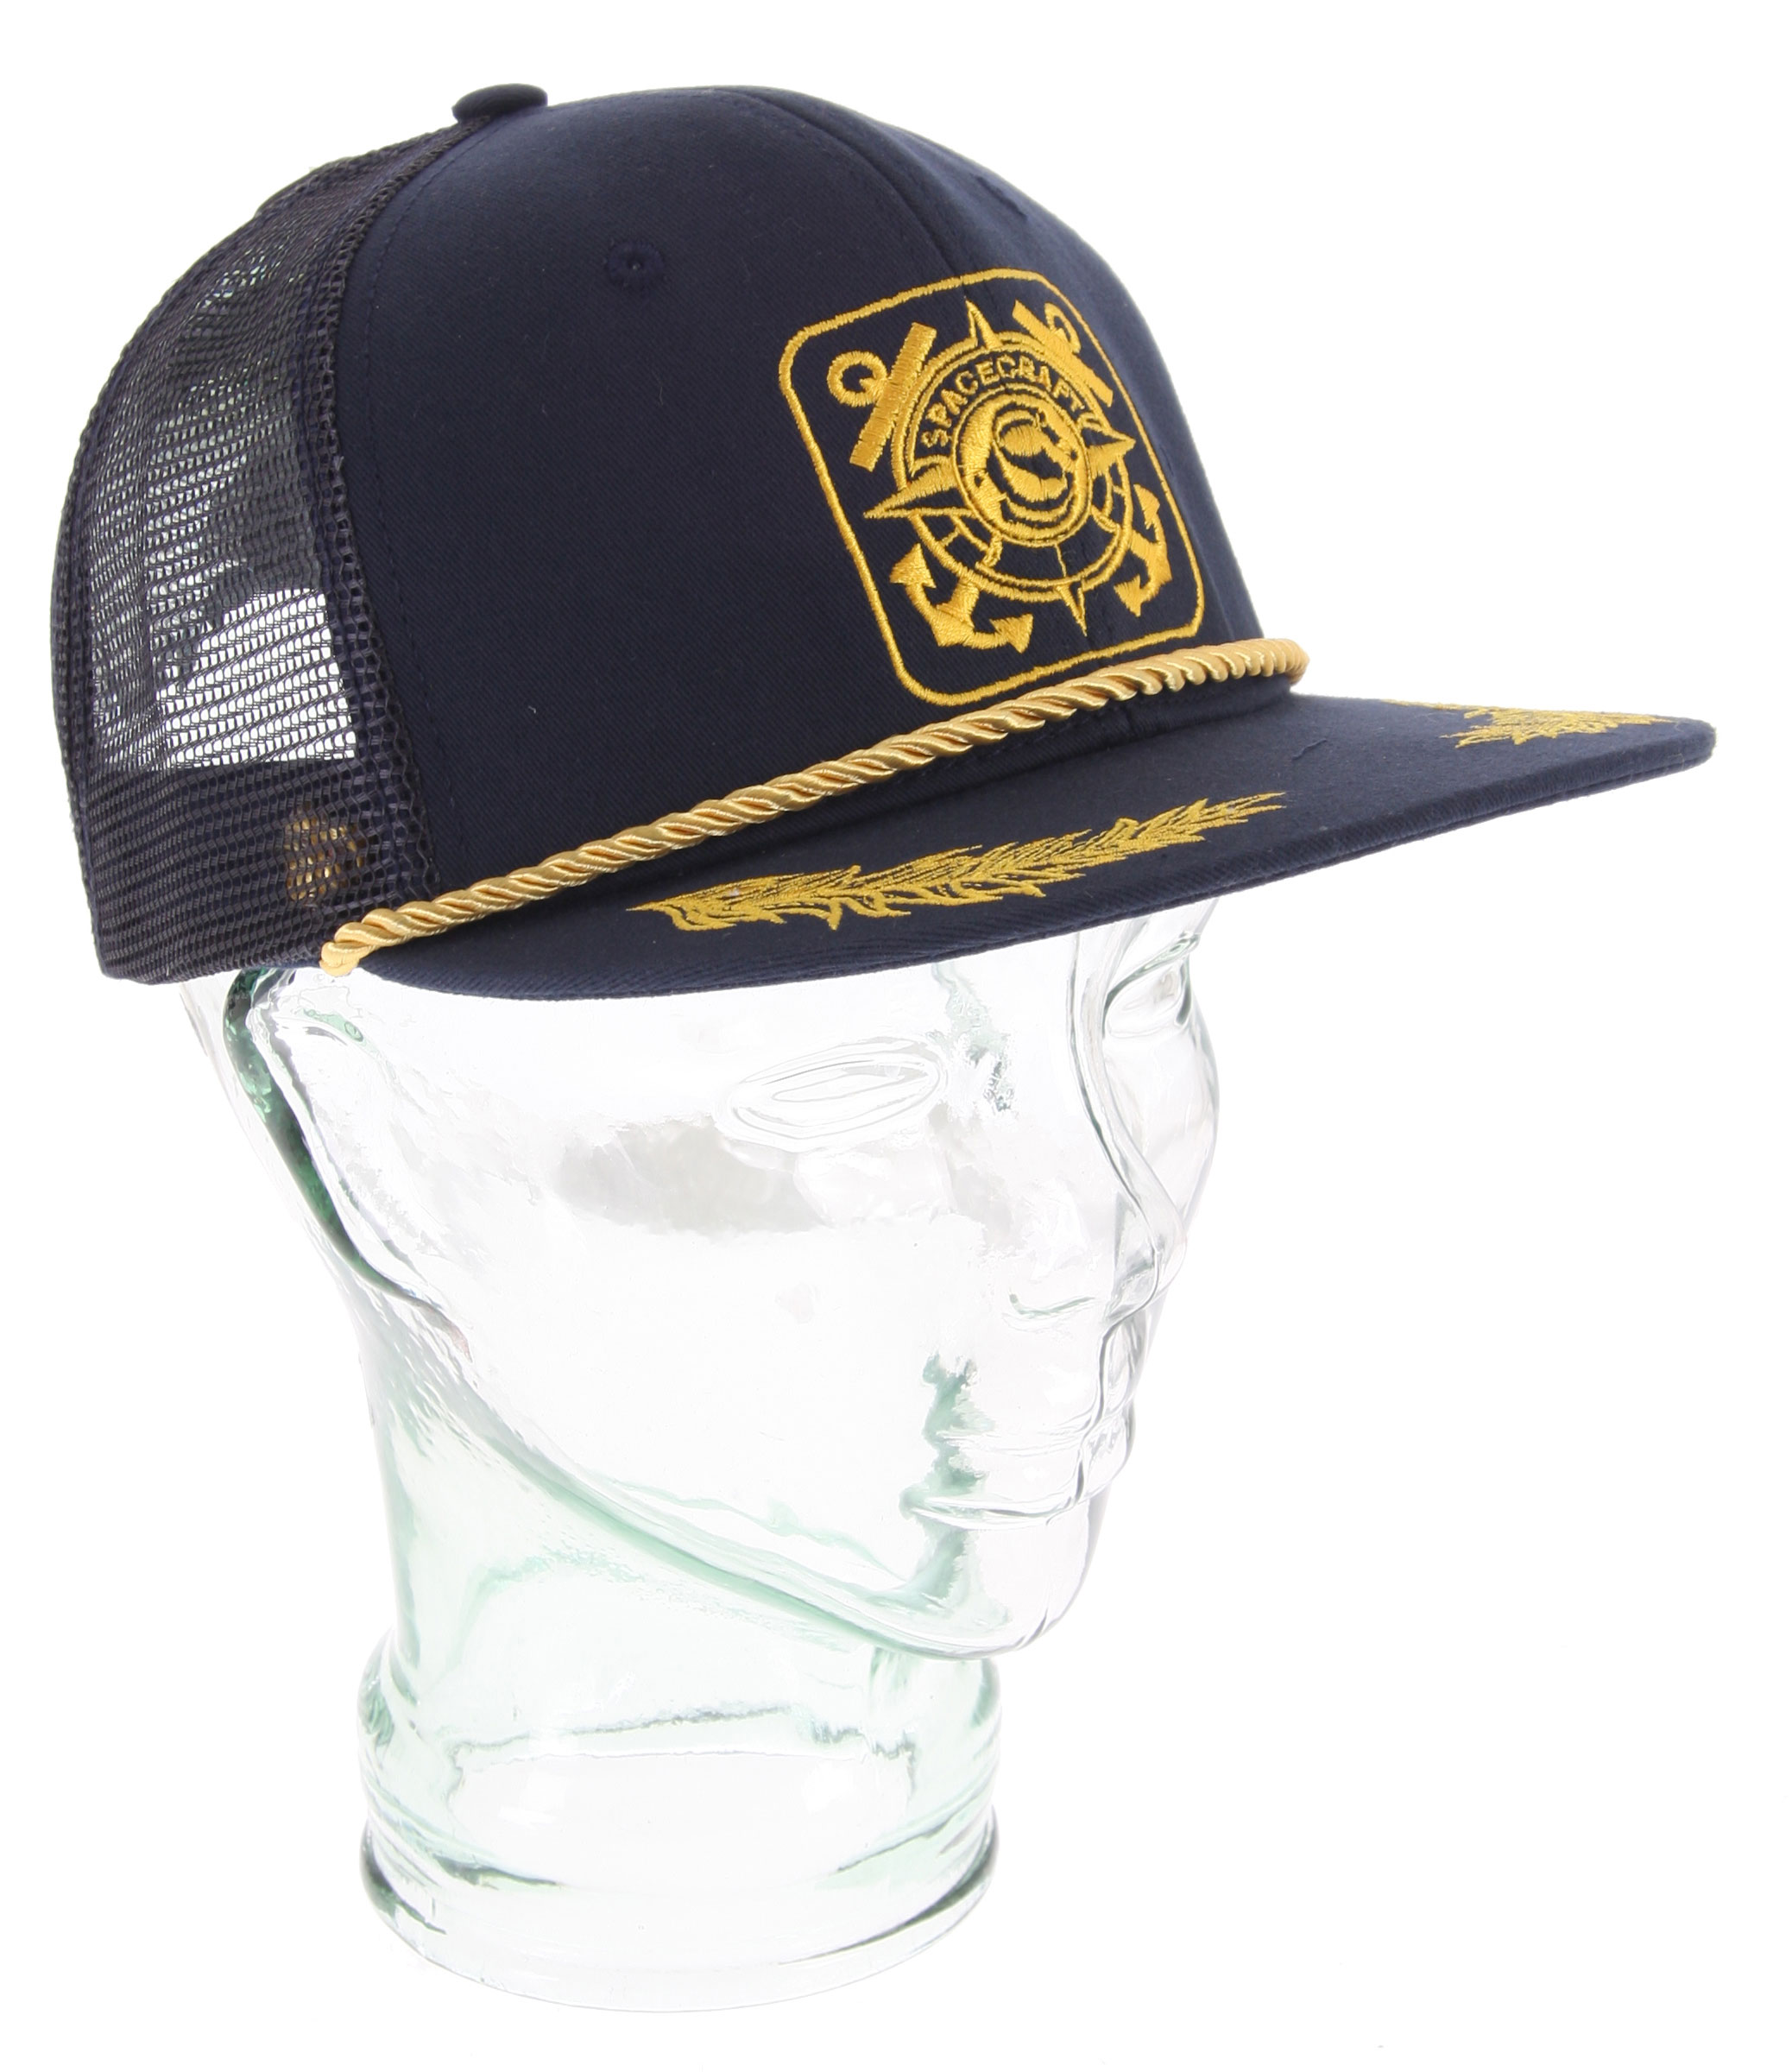 Key Features of the Spacecraft Anchor Trucker Cap: Twill Cap with Patch Embroidery on Front Puffy Leaf Embroidery on Bill Mesh Back Snap Back Closure & Metal Cat Rivet Classic - $17.95